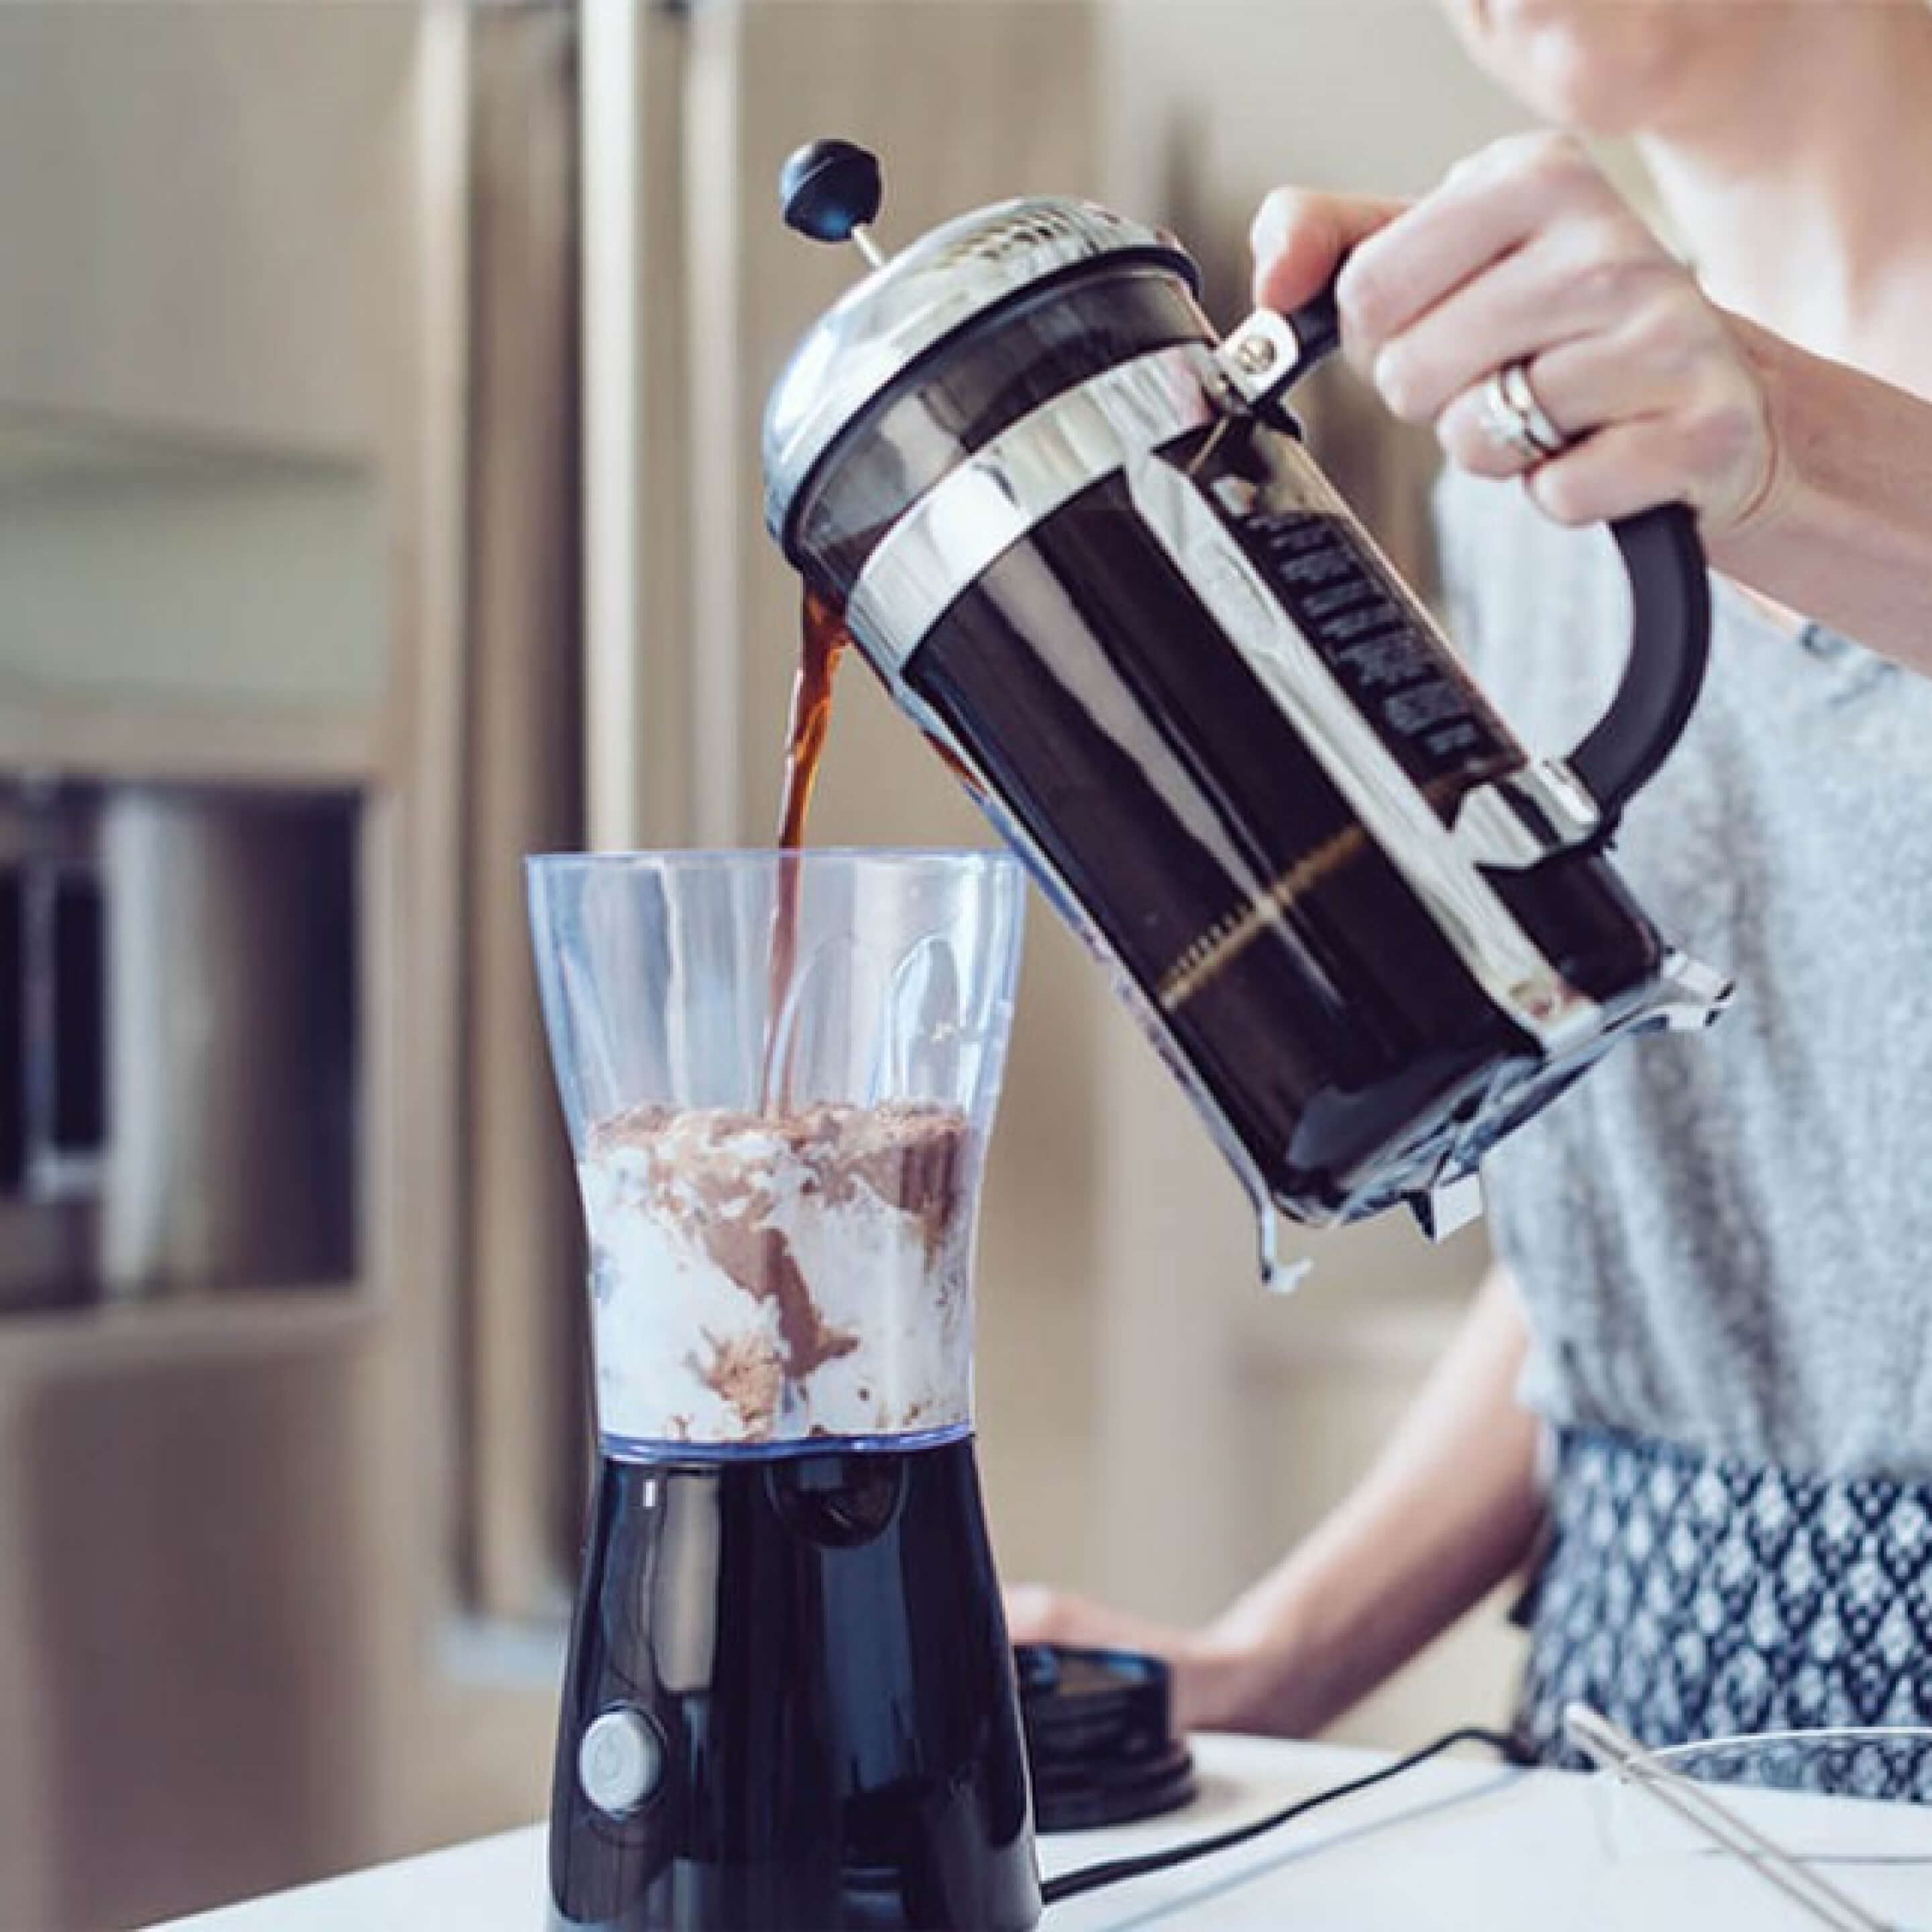 Blended Coconut coffee